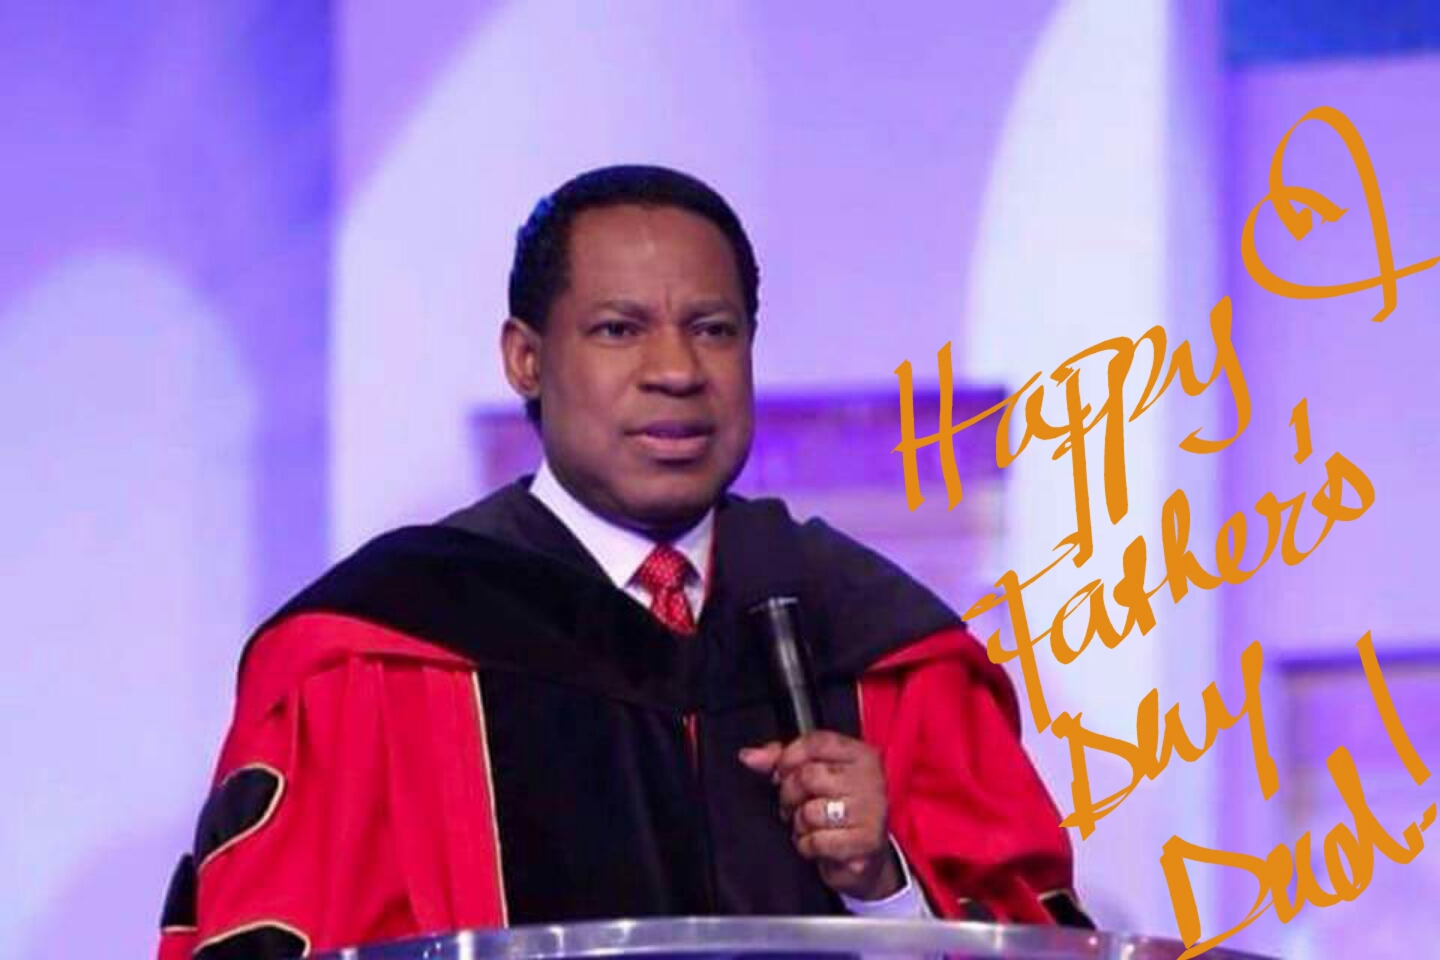 Happy Father's Day Pastor Sir!